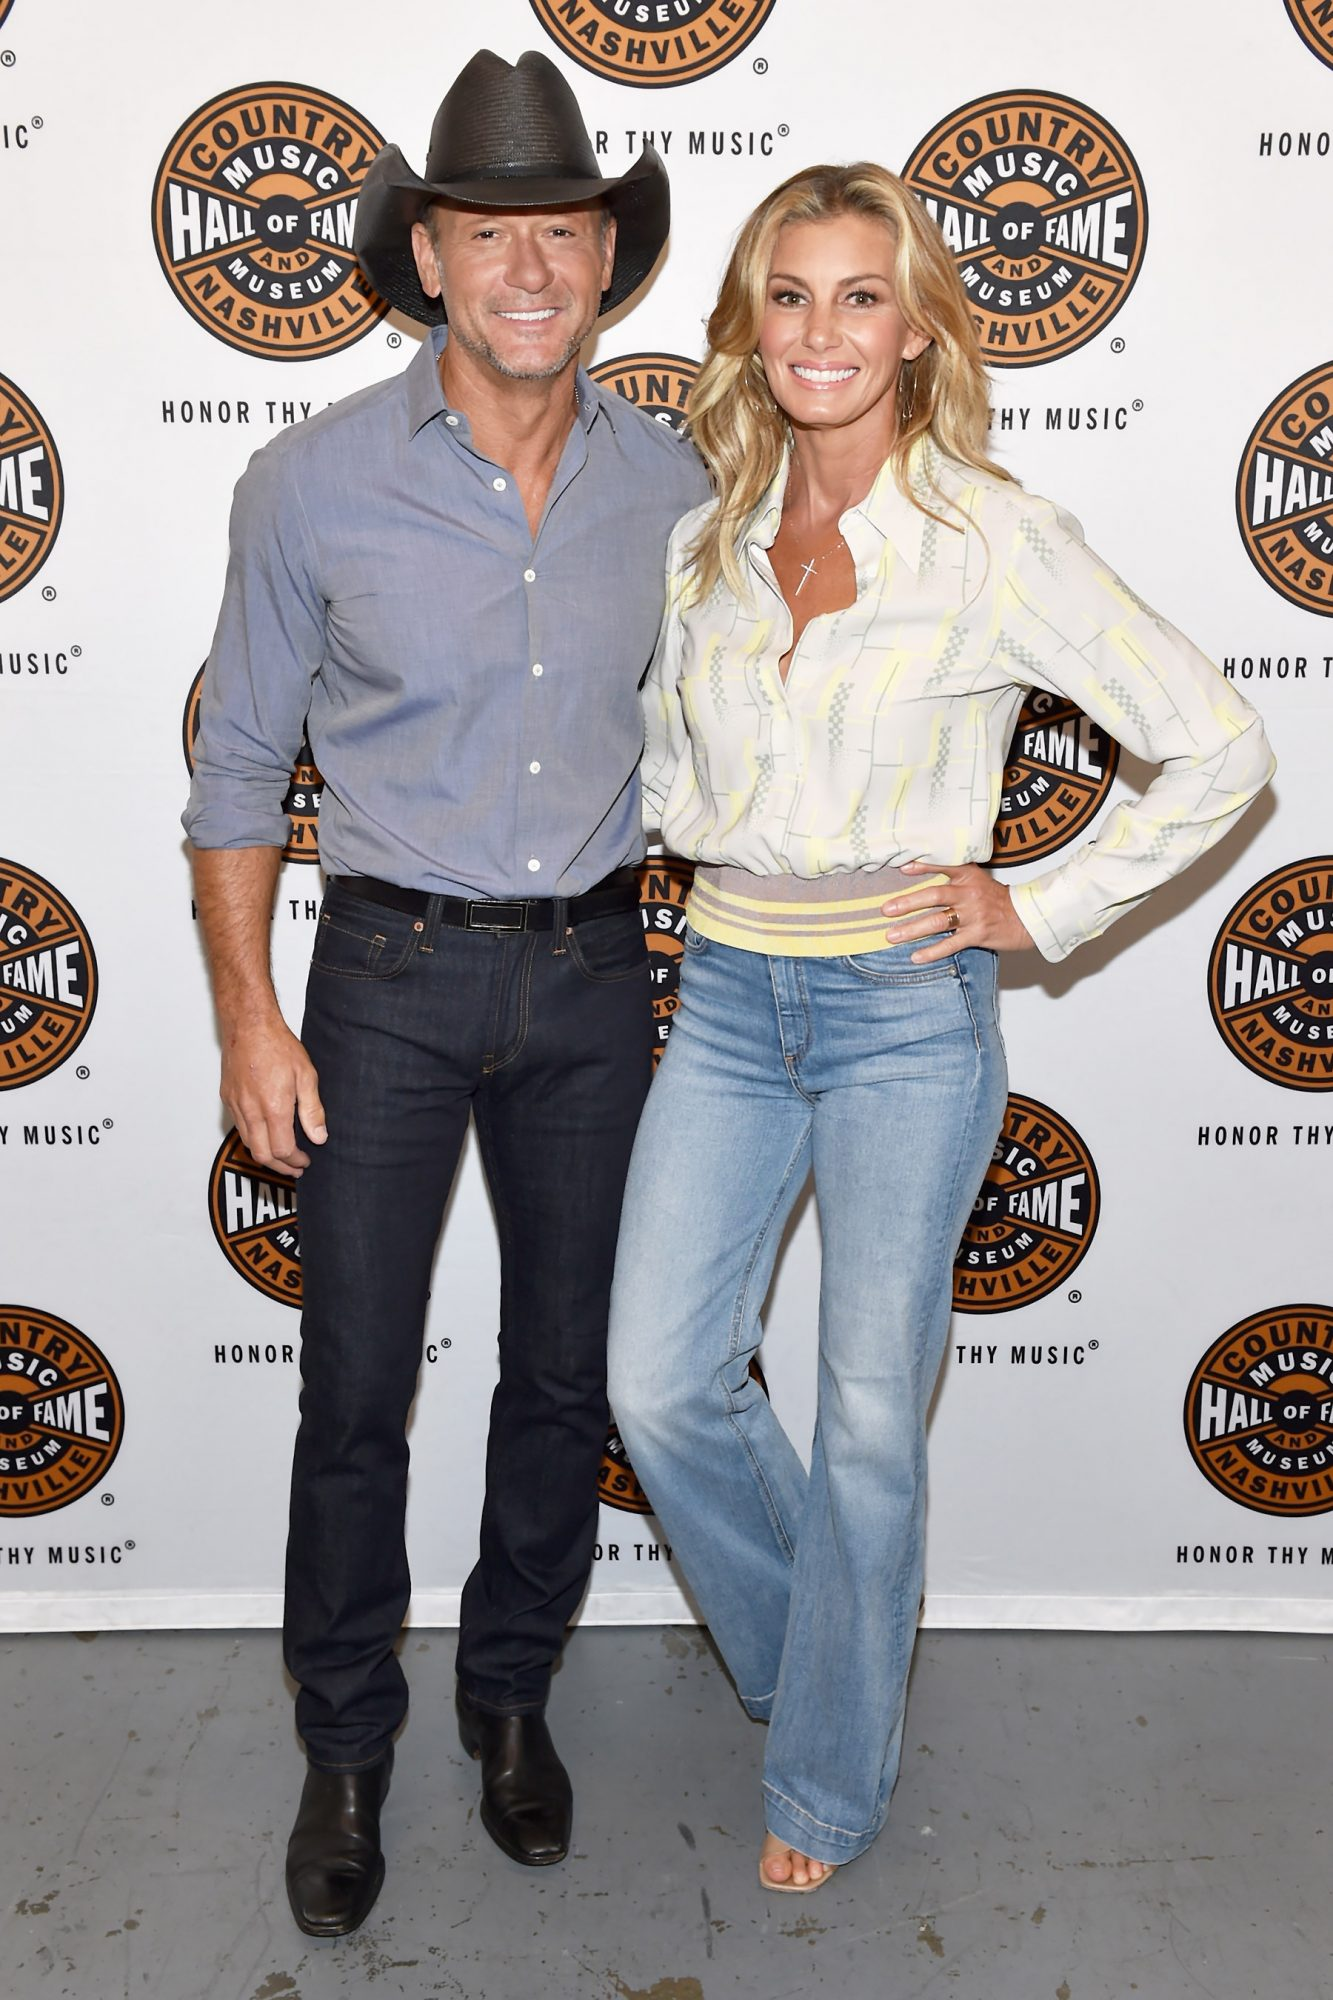 Tim McGraw & Faith Hill Participate In All Access Program At The Country Music Hall Of Fame And Museum's CMA Theater